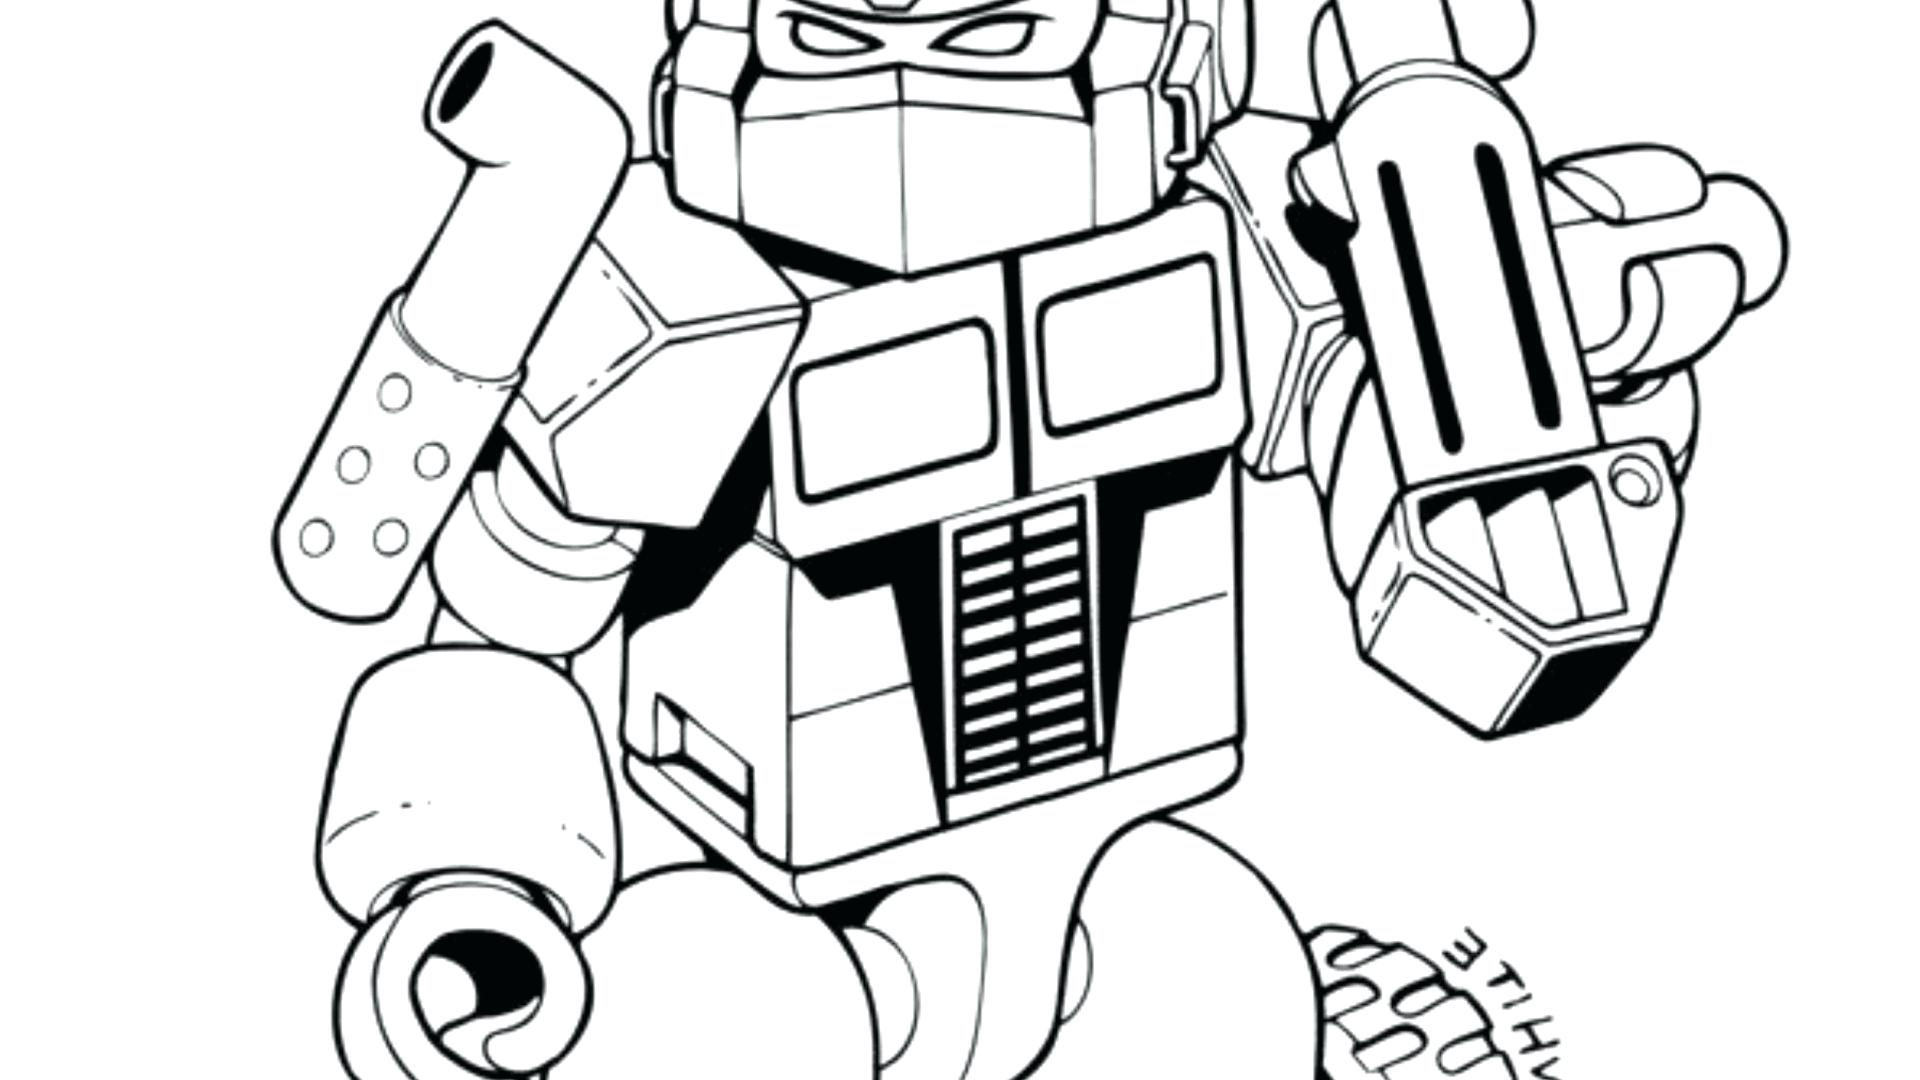 1920x1080 Coloring Stoplight Coloring Page Bumblebee Online For Kid